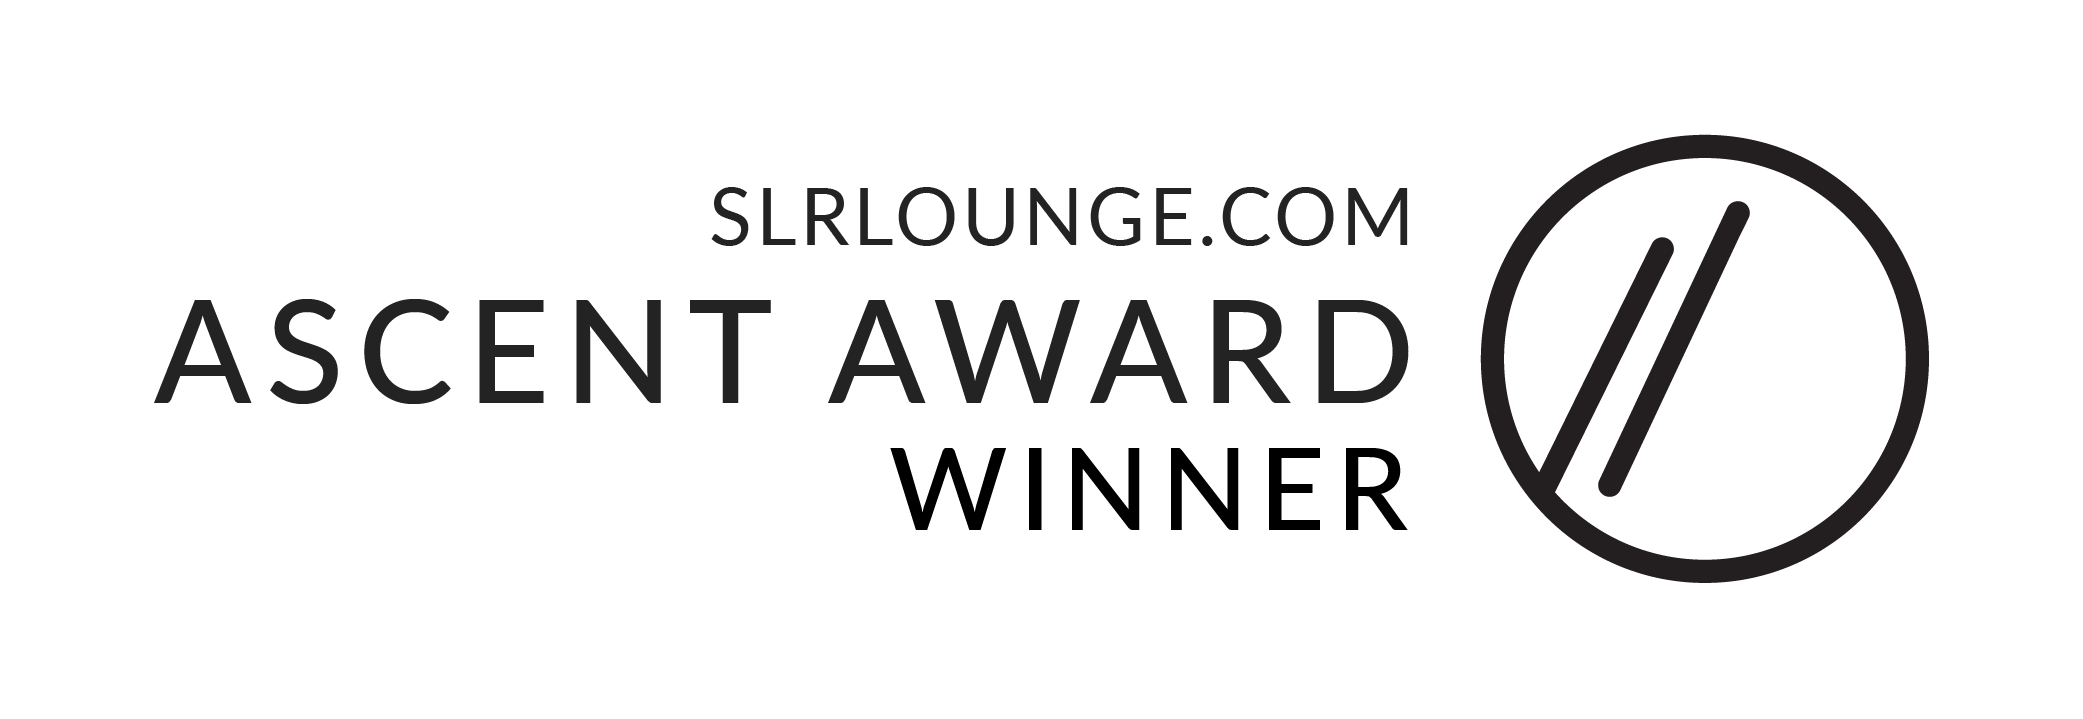 SLR Lounge Ascent Award